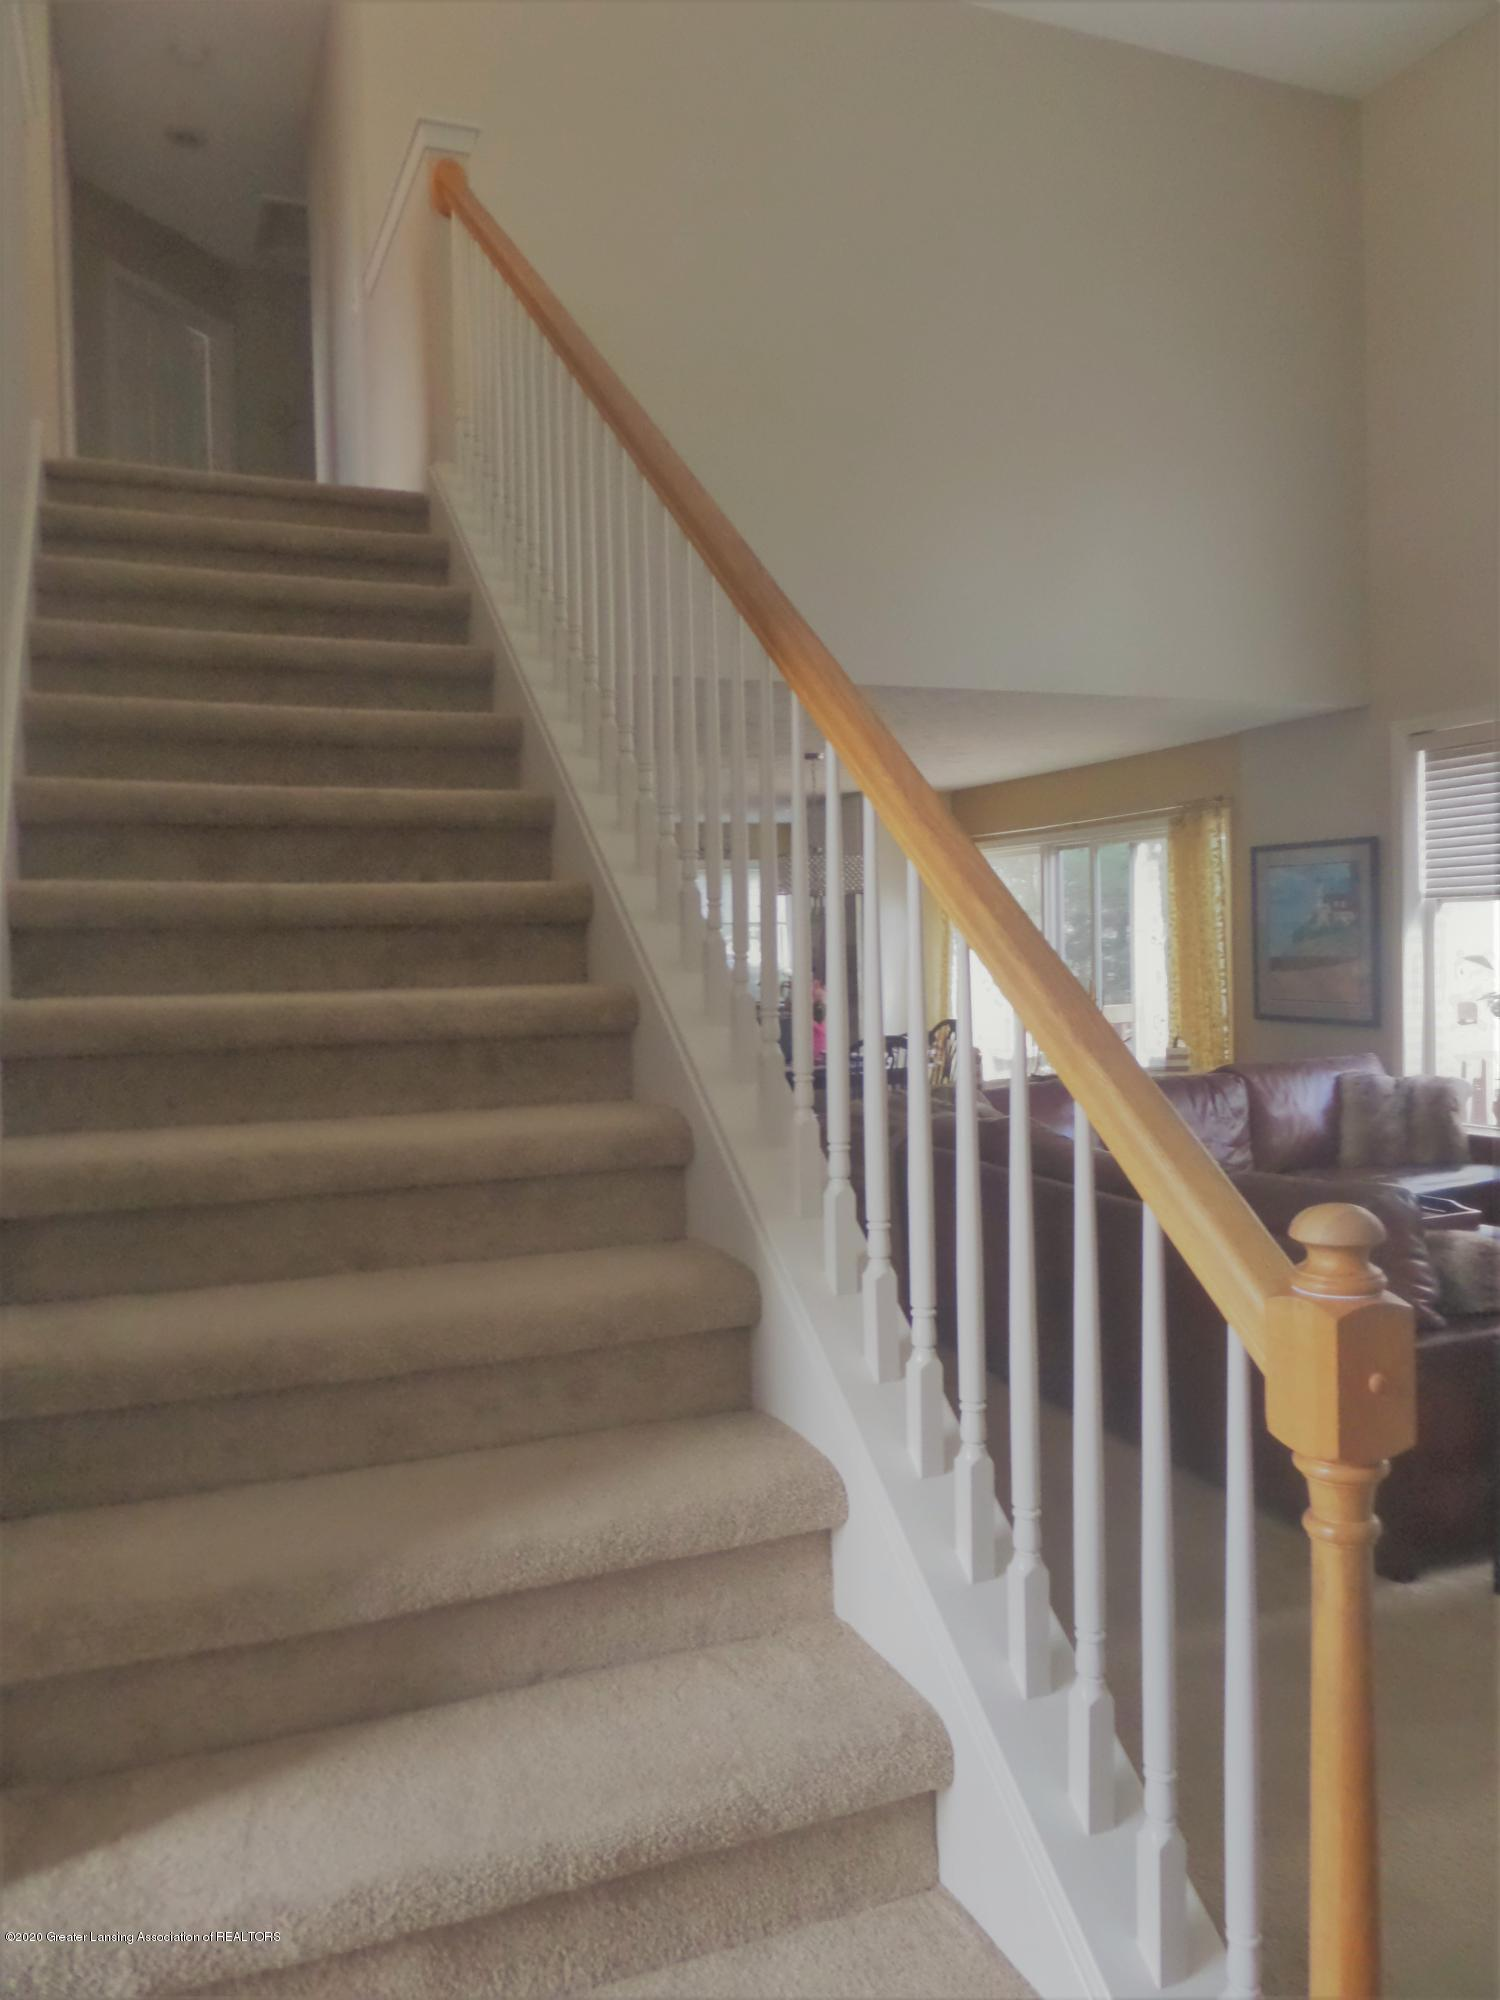 5332 Burcham Dr - Stairs overlooking living room - 18